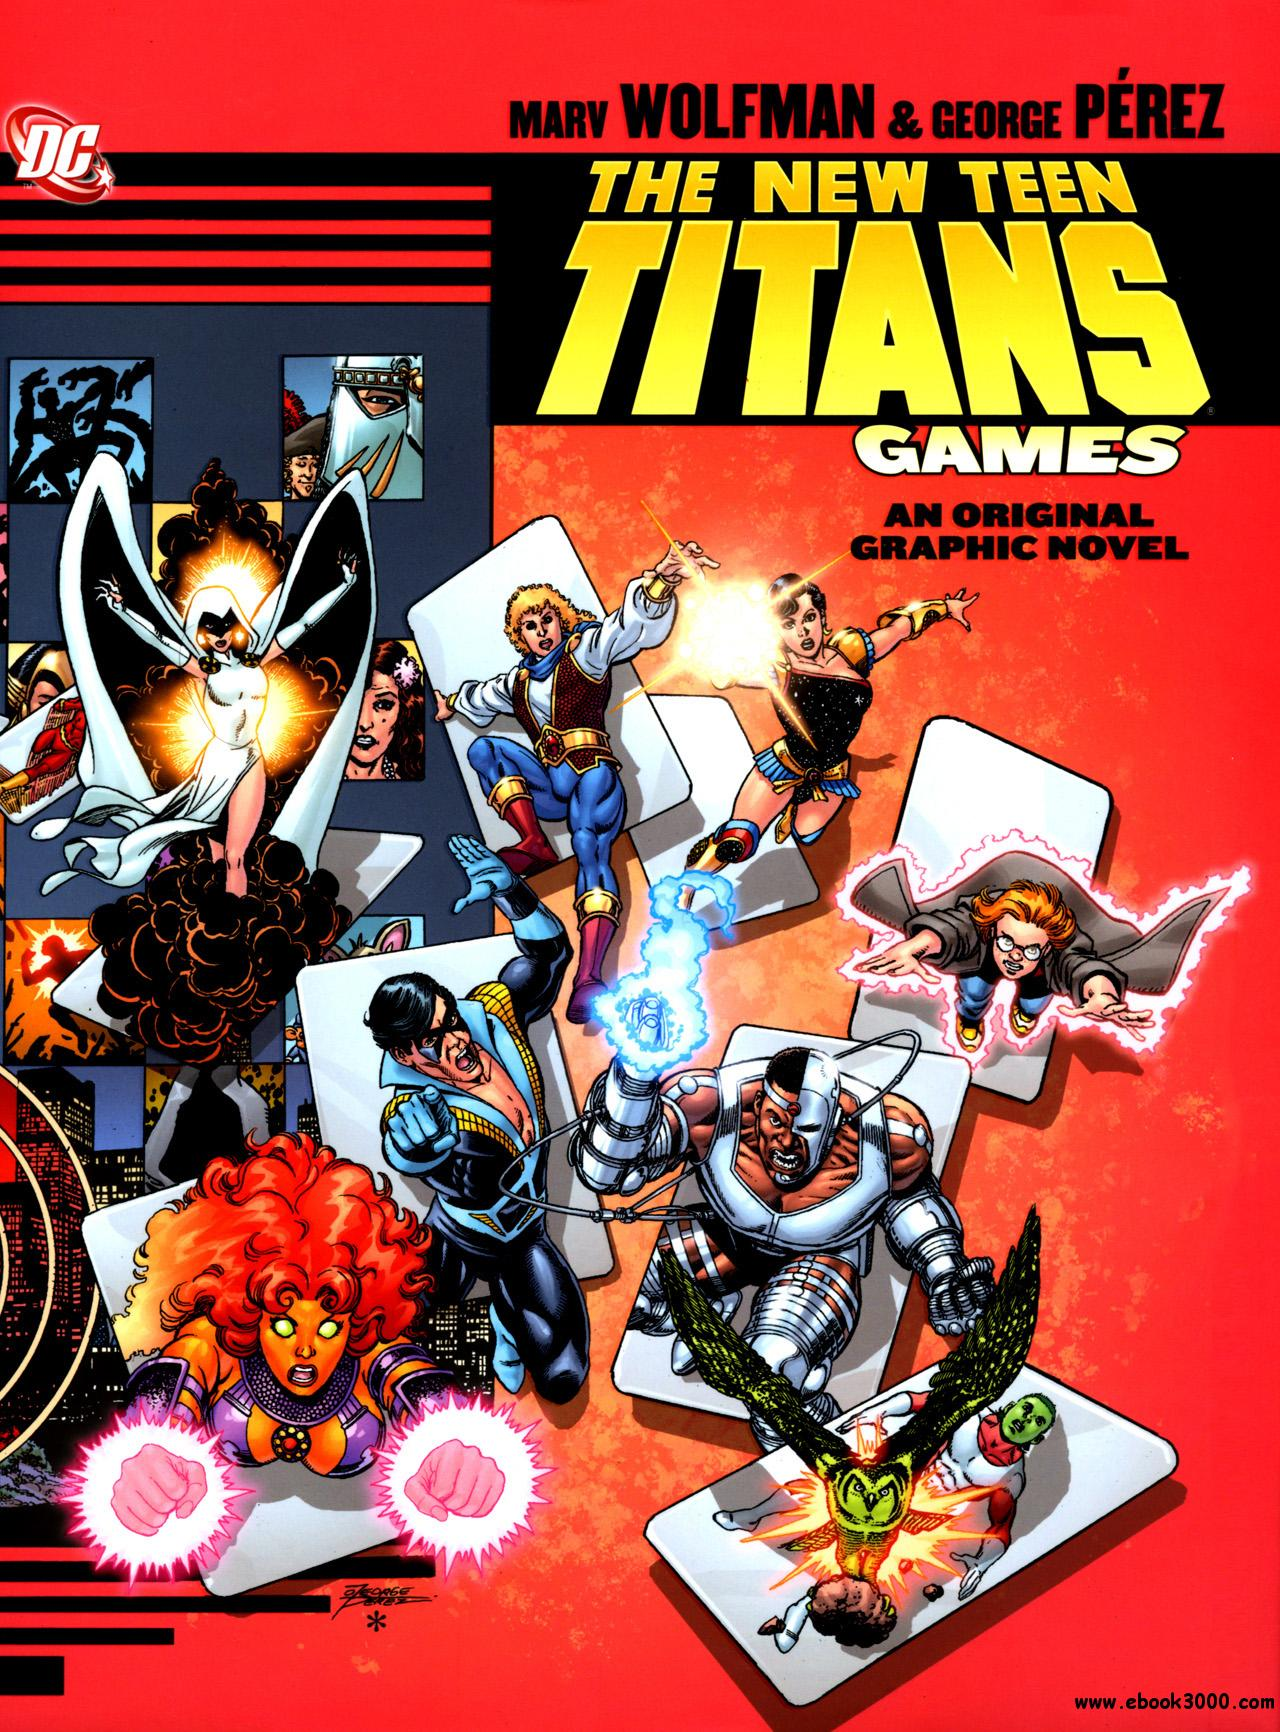 The New Teen Titans - Games - [HC] (2011) free download